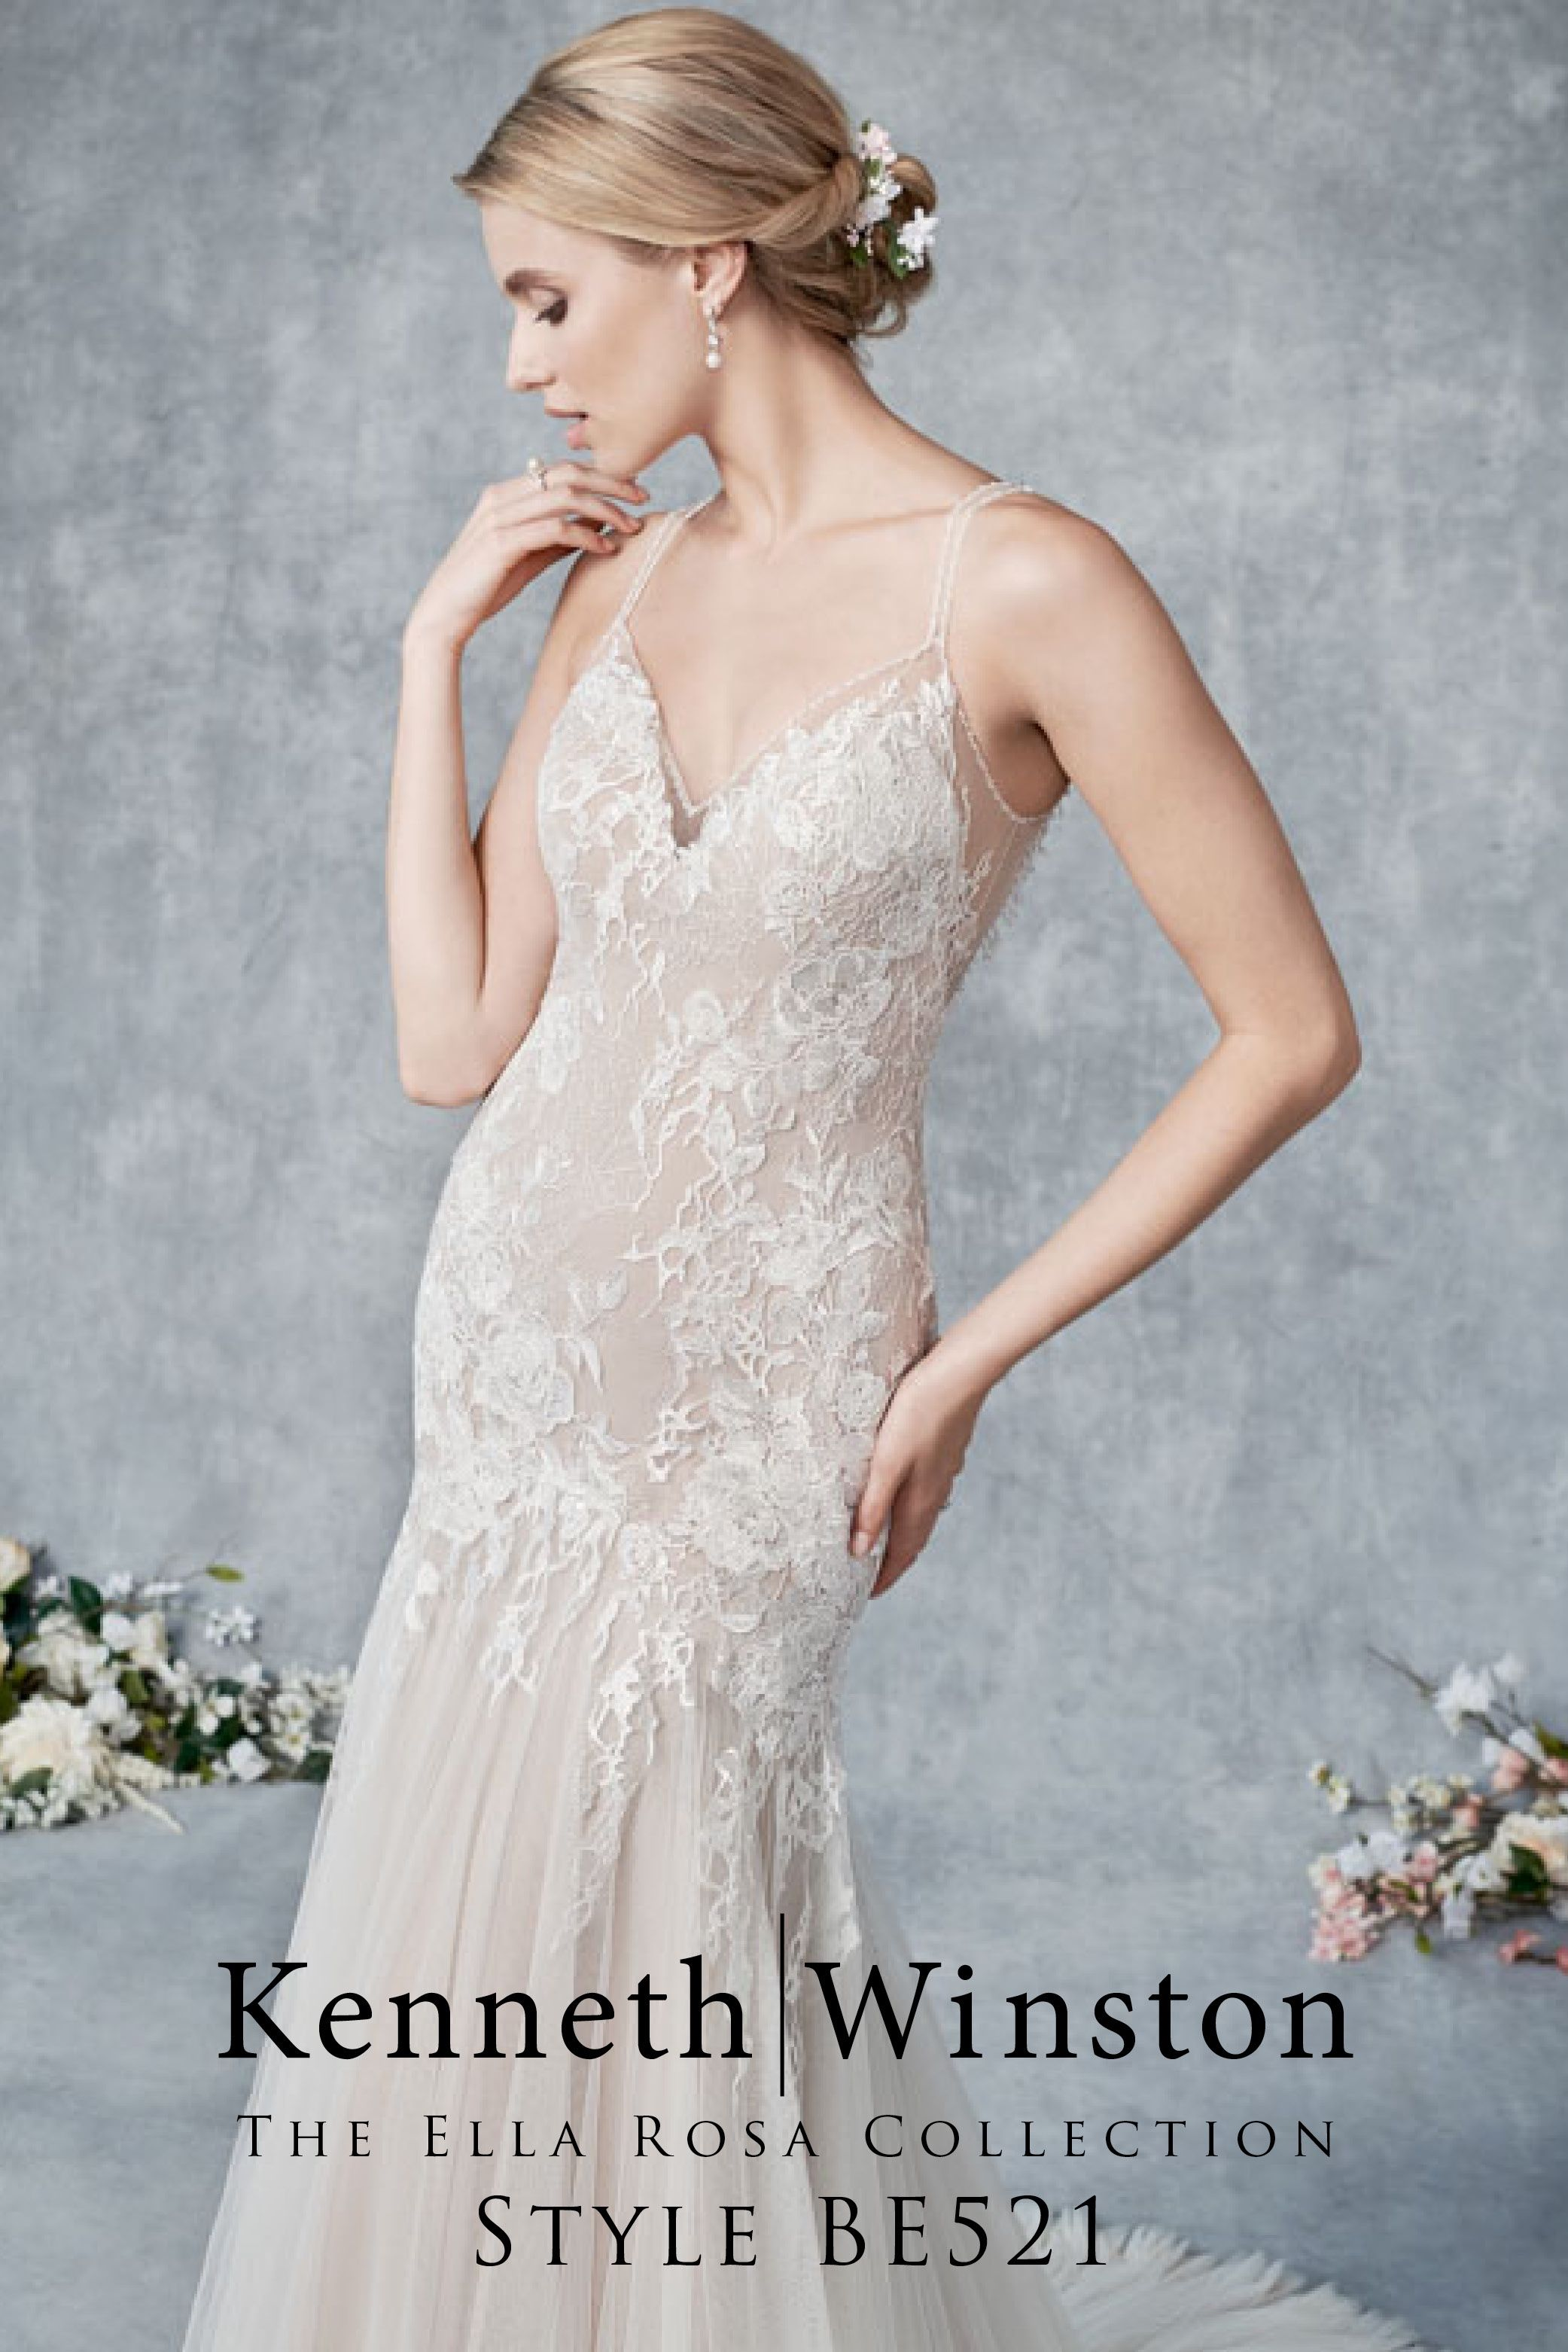 Soft Tulle Mermaid Wedding Dress with Beaded Straps and